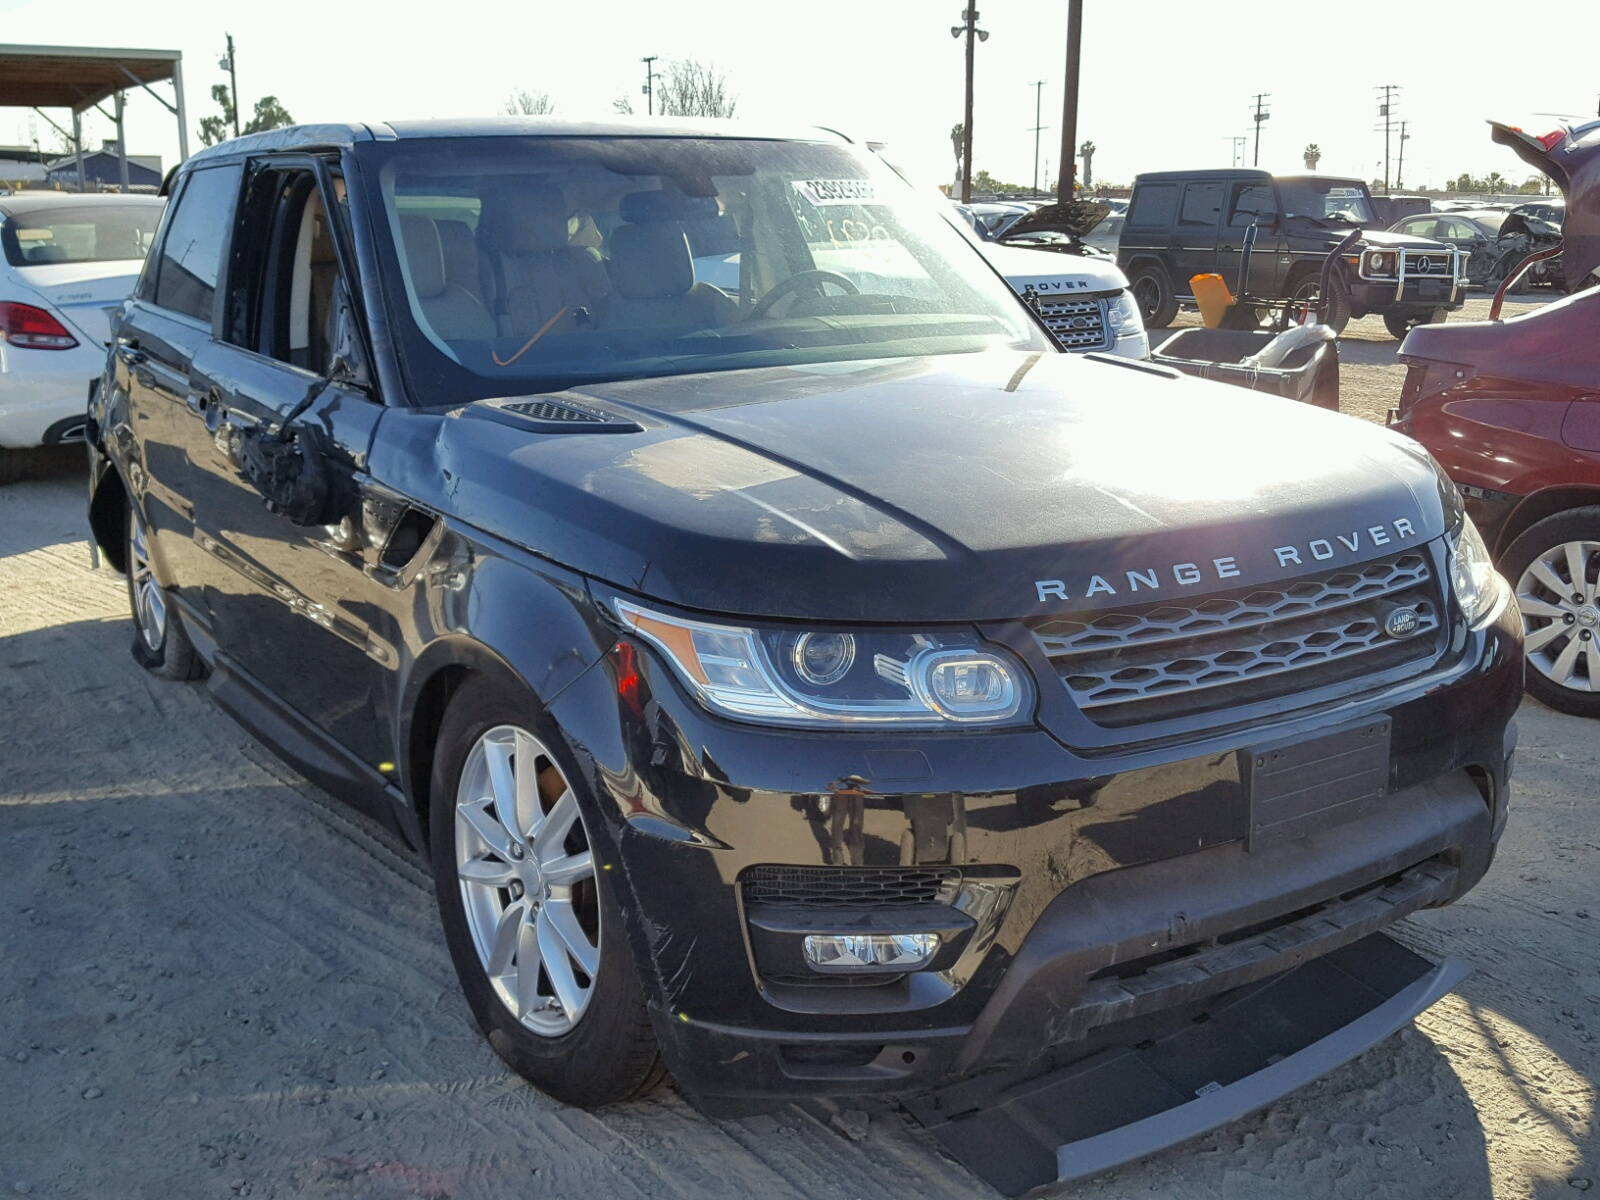 Auto Auction Ended On VIN SALWGPFGA LAND ROVER RANGE - Range rover repair los angeles